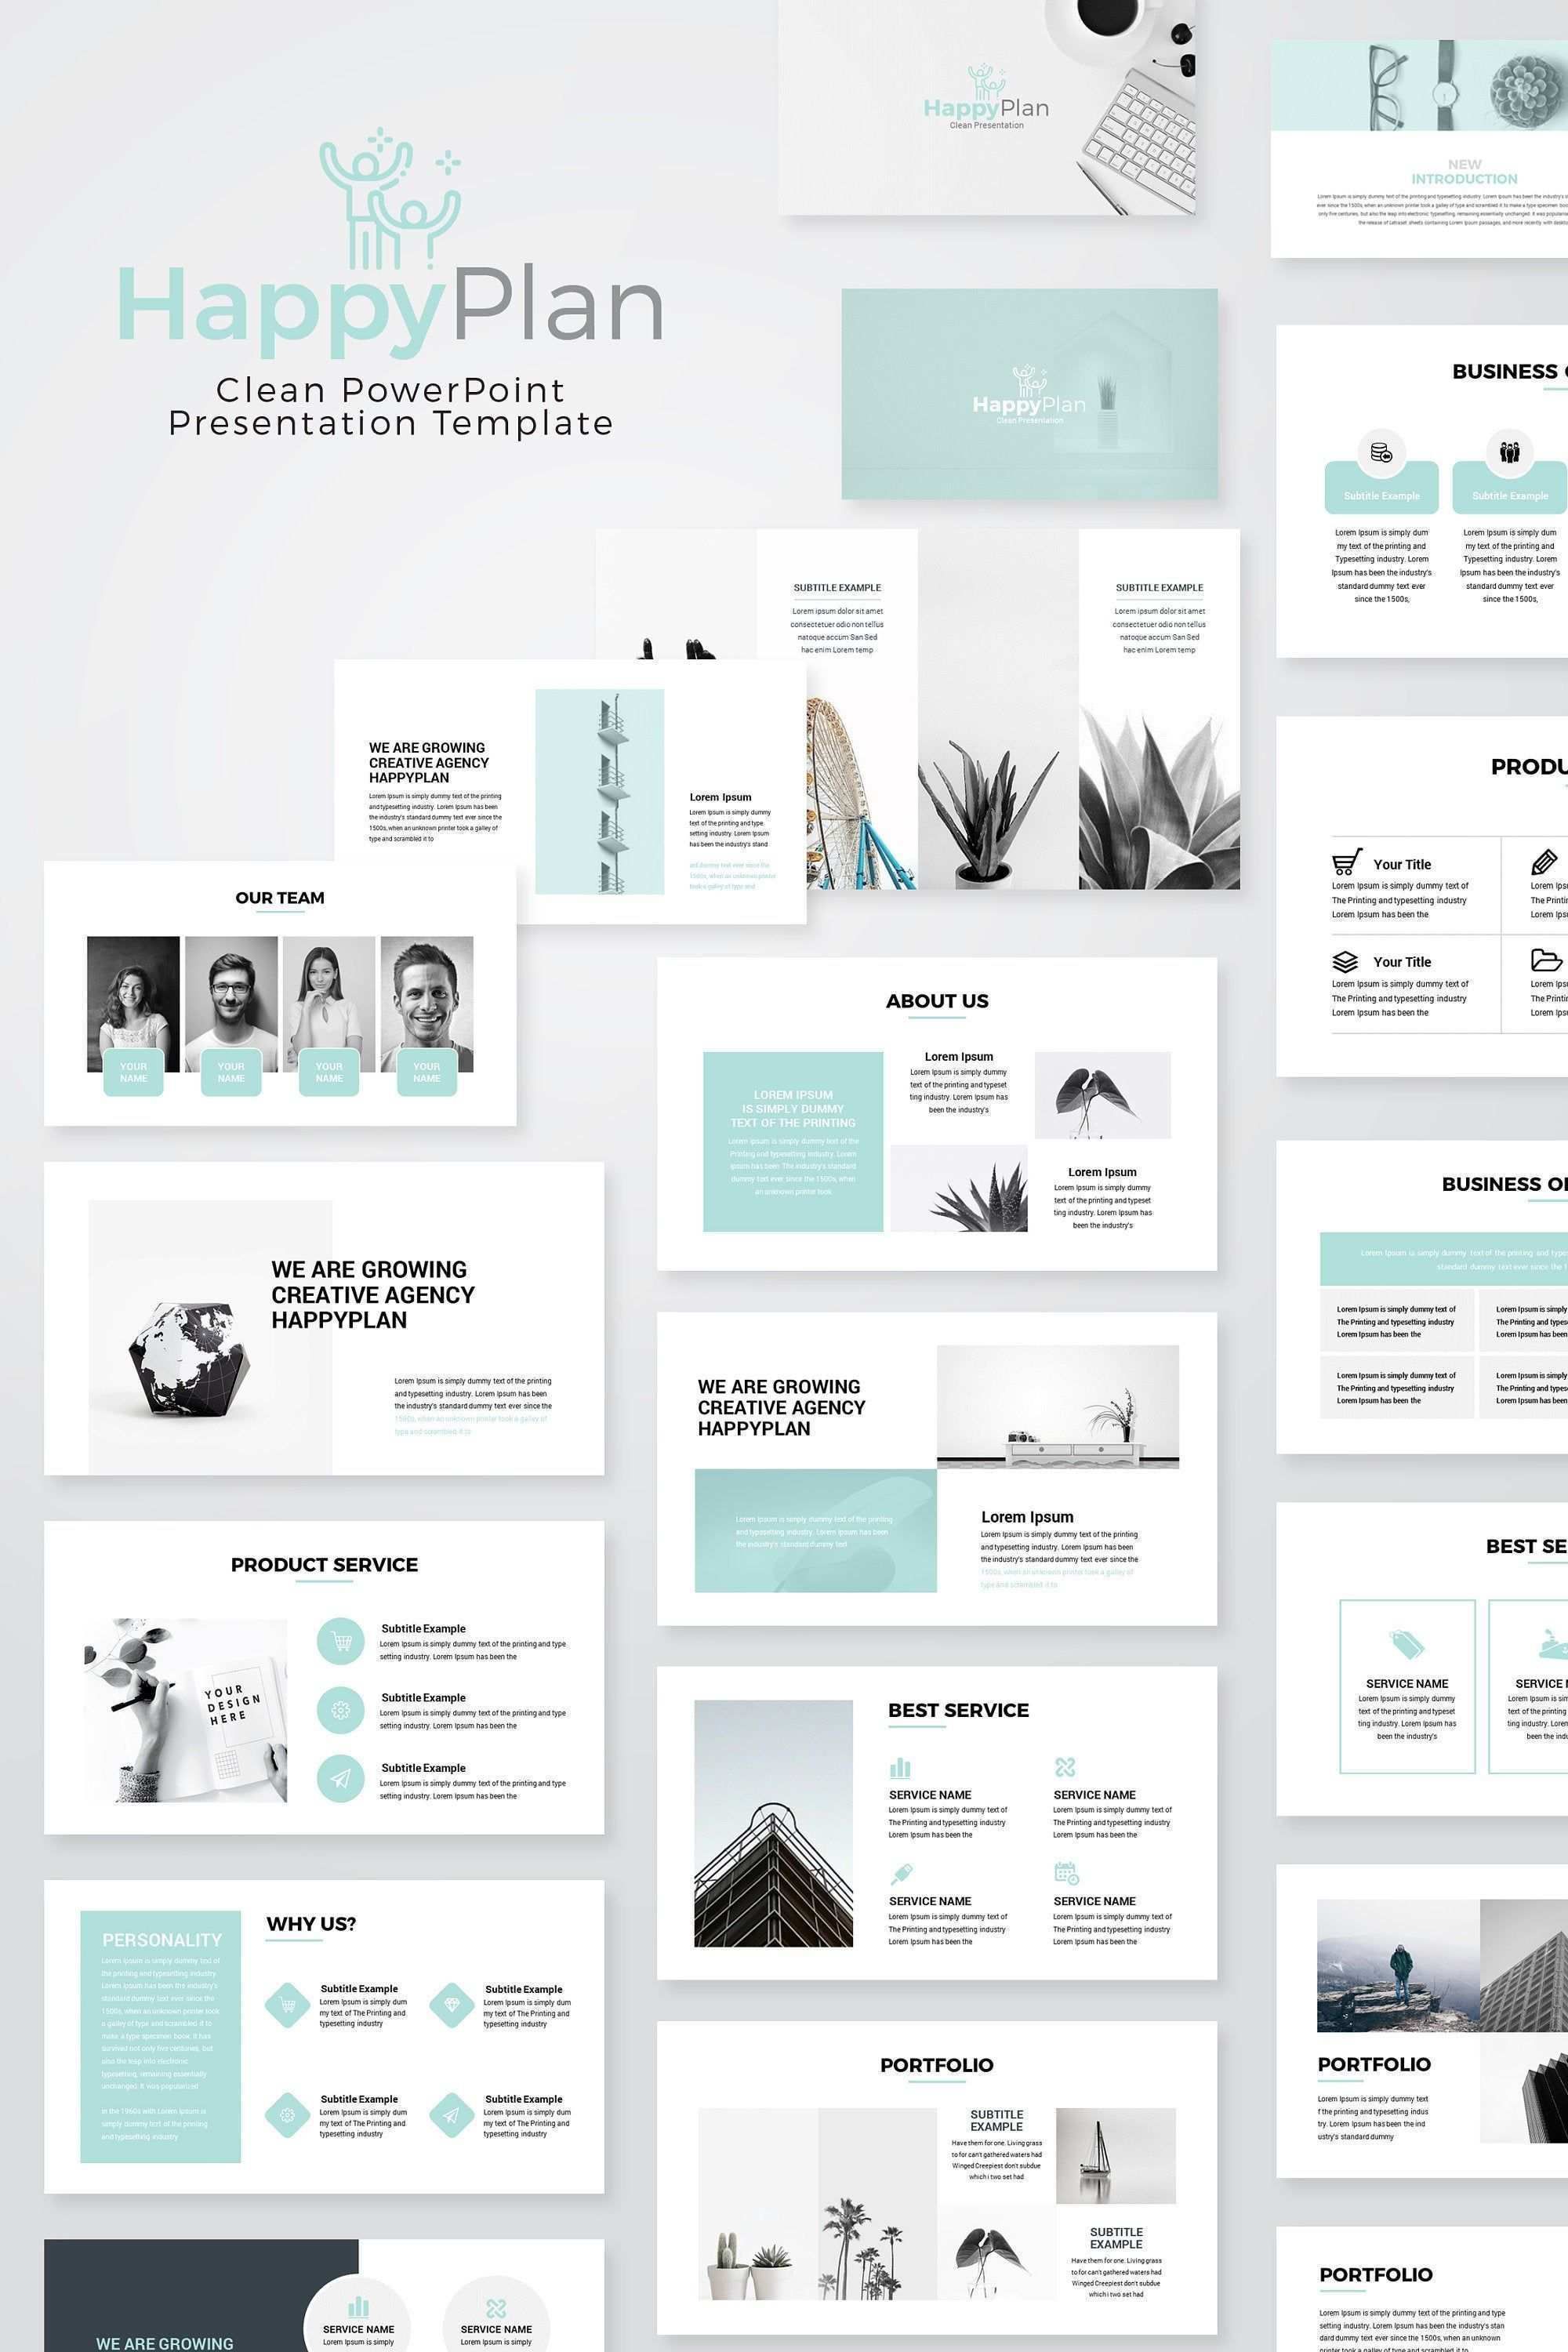 27 Blue Simple Business Analysis Powerpoint Template Powerpoint T Powerpoint Presentation Design Presentation Slides Design Presentation Design Layout